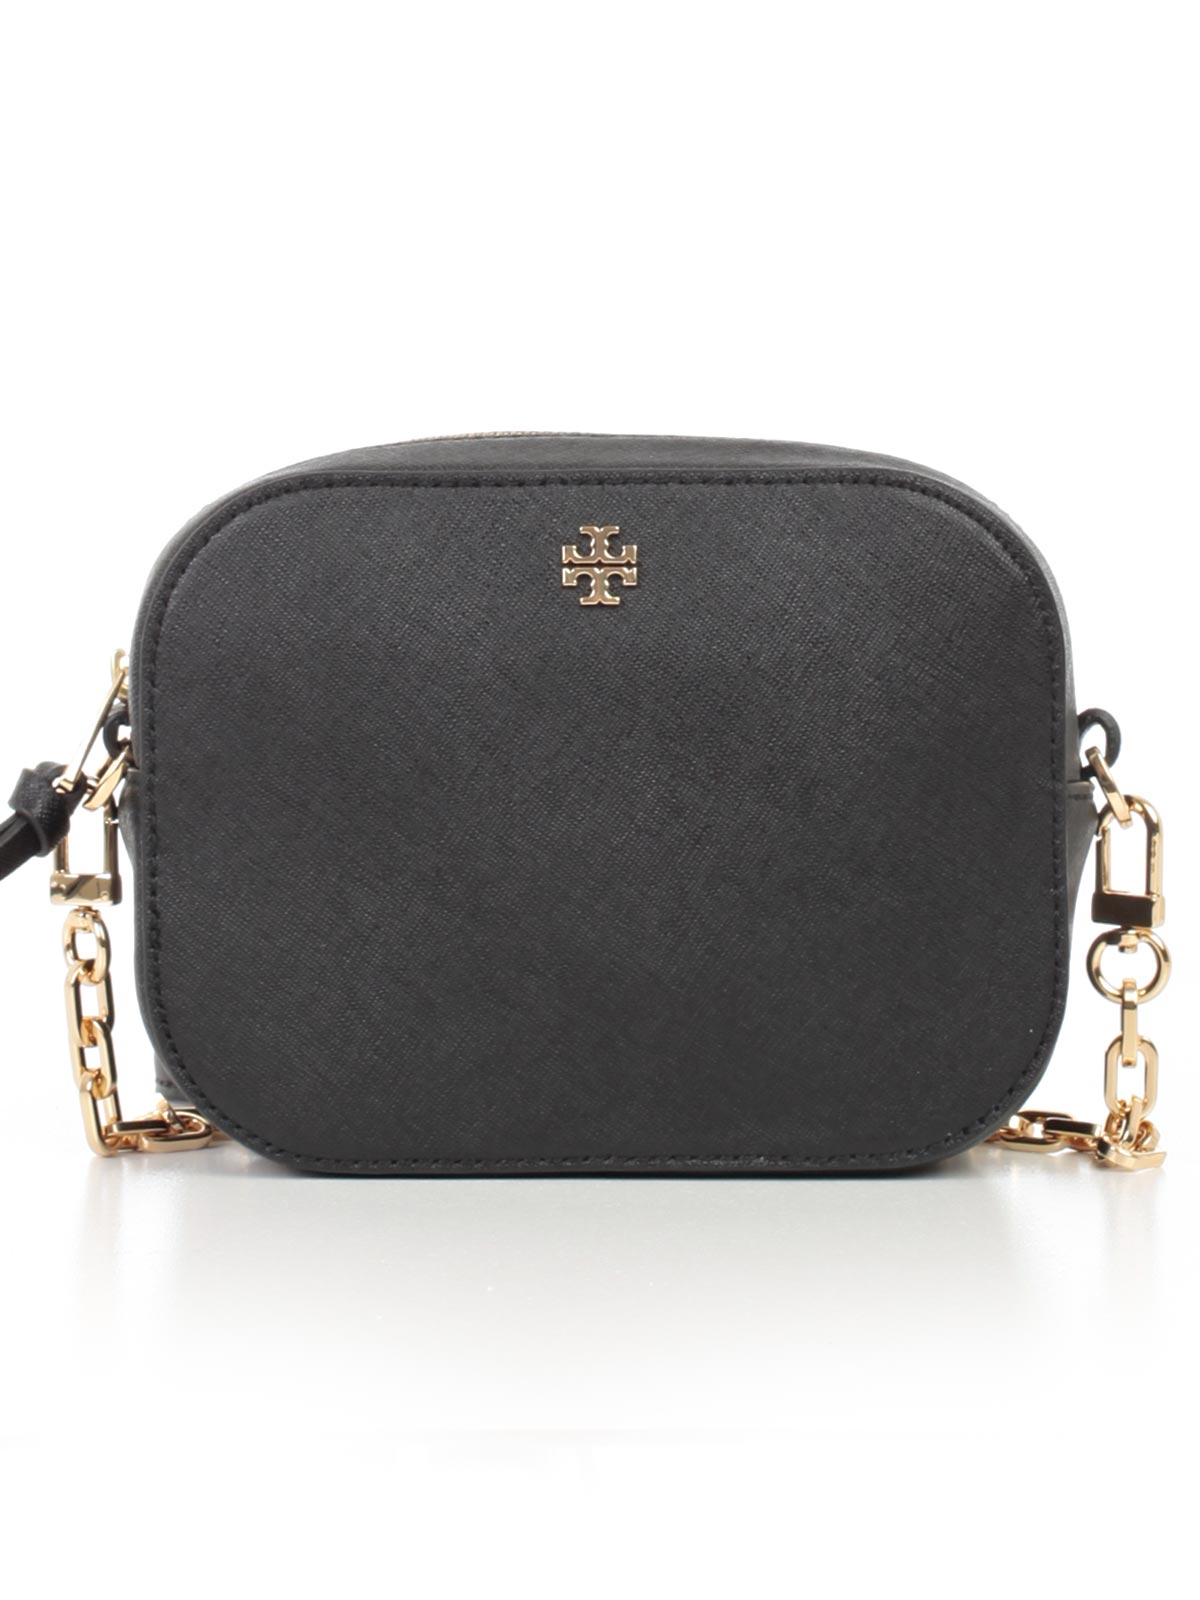 Picture of TORY BURCH BAG BORSA ROBINSON ROUND CROSS-BODY